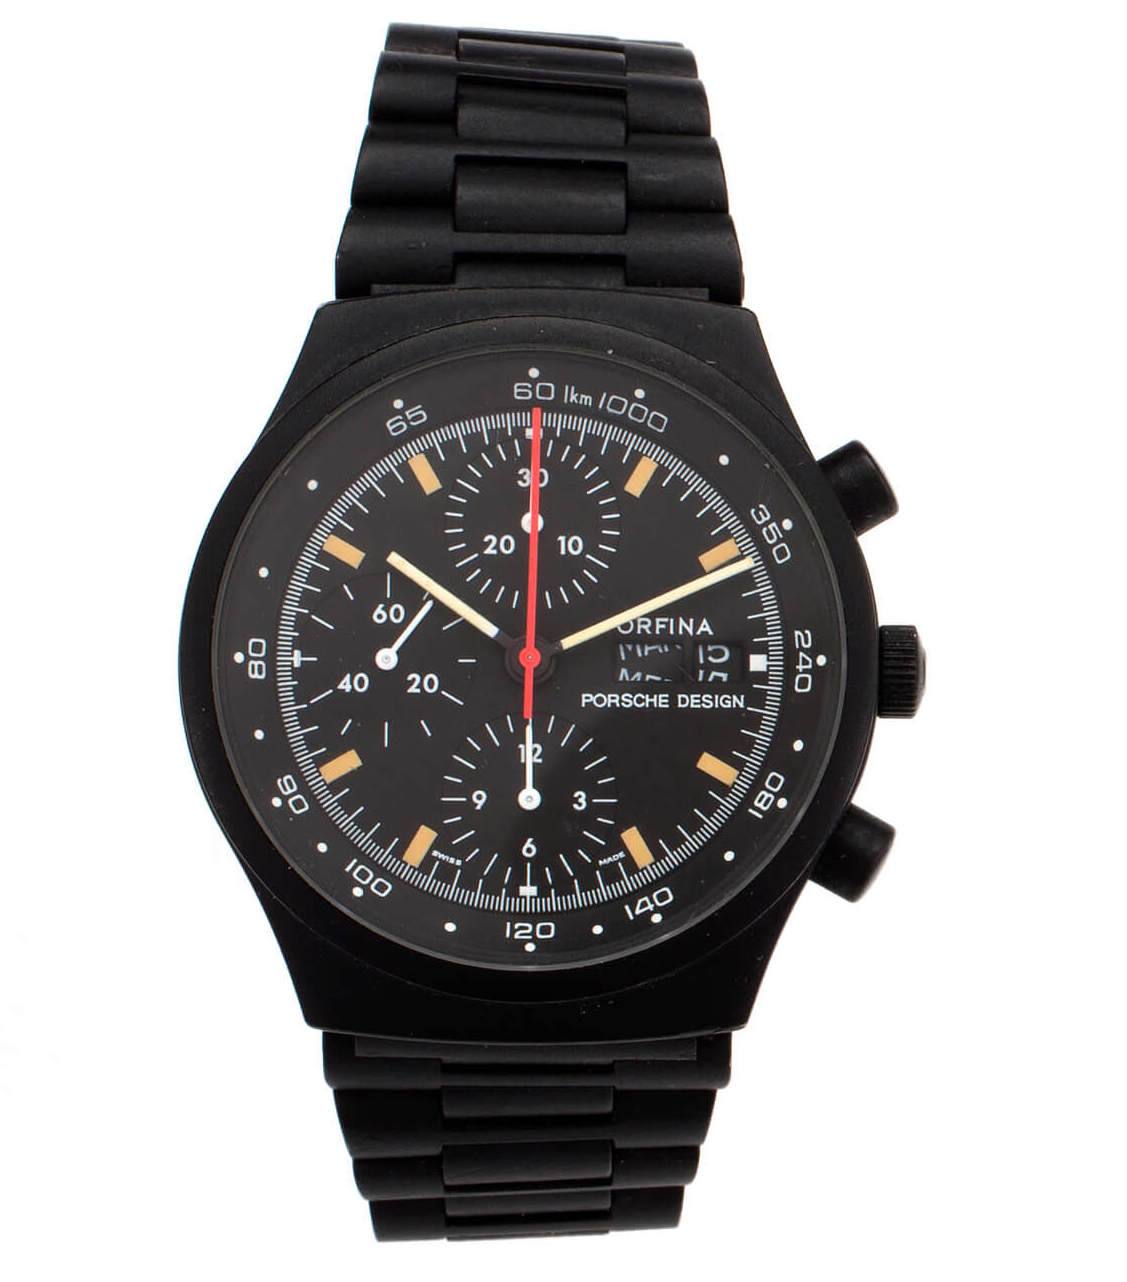 What is that watch in Top Gun: Maverick? Porsche-Design-Orfina-Chronograph-Black-PVD-TOP-GUN-1986-Maverick-Tom-Cruise-10-2